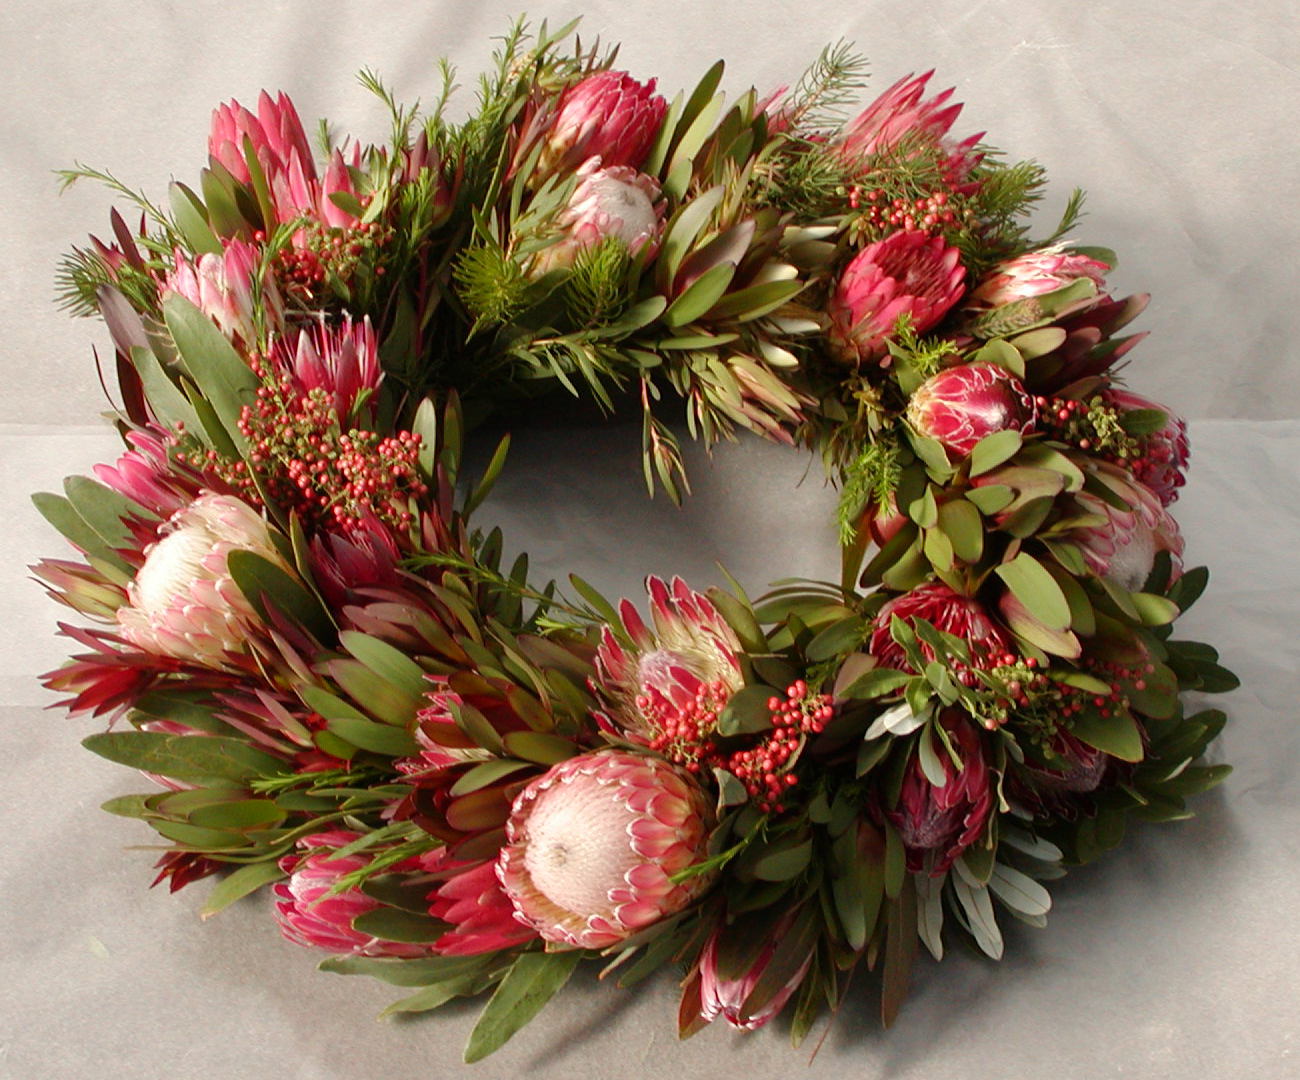 Christmas-Wreaths-See-more-beautiful-DIY-Chrsitmas-Wreath-ideas-at-DIYChristmasDecorations-net-wallpaper-wpc9003561